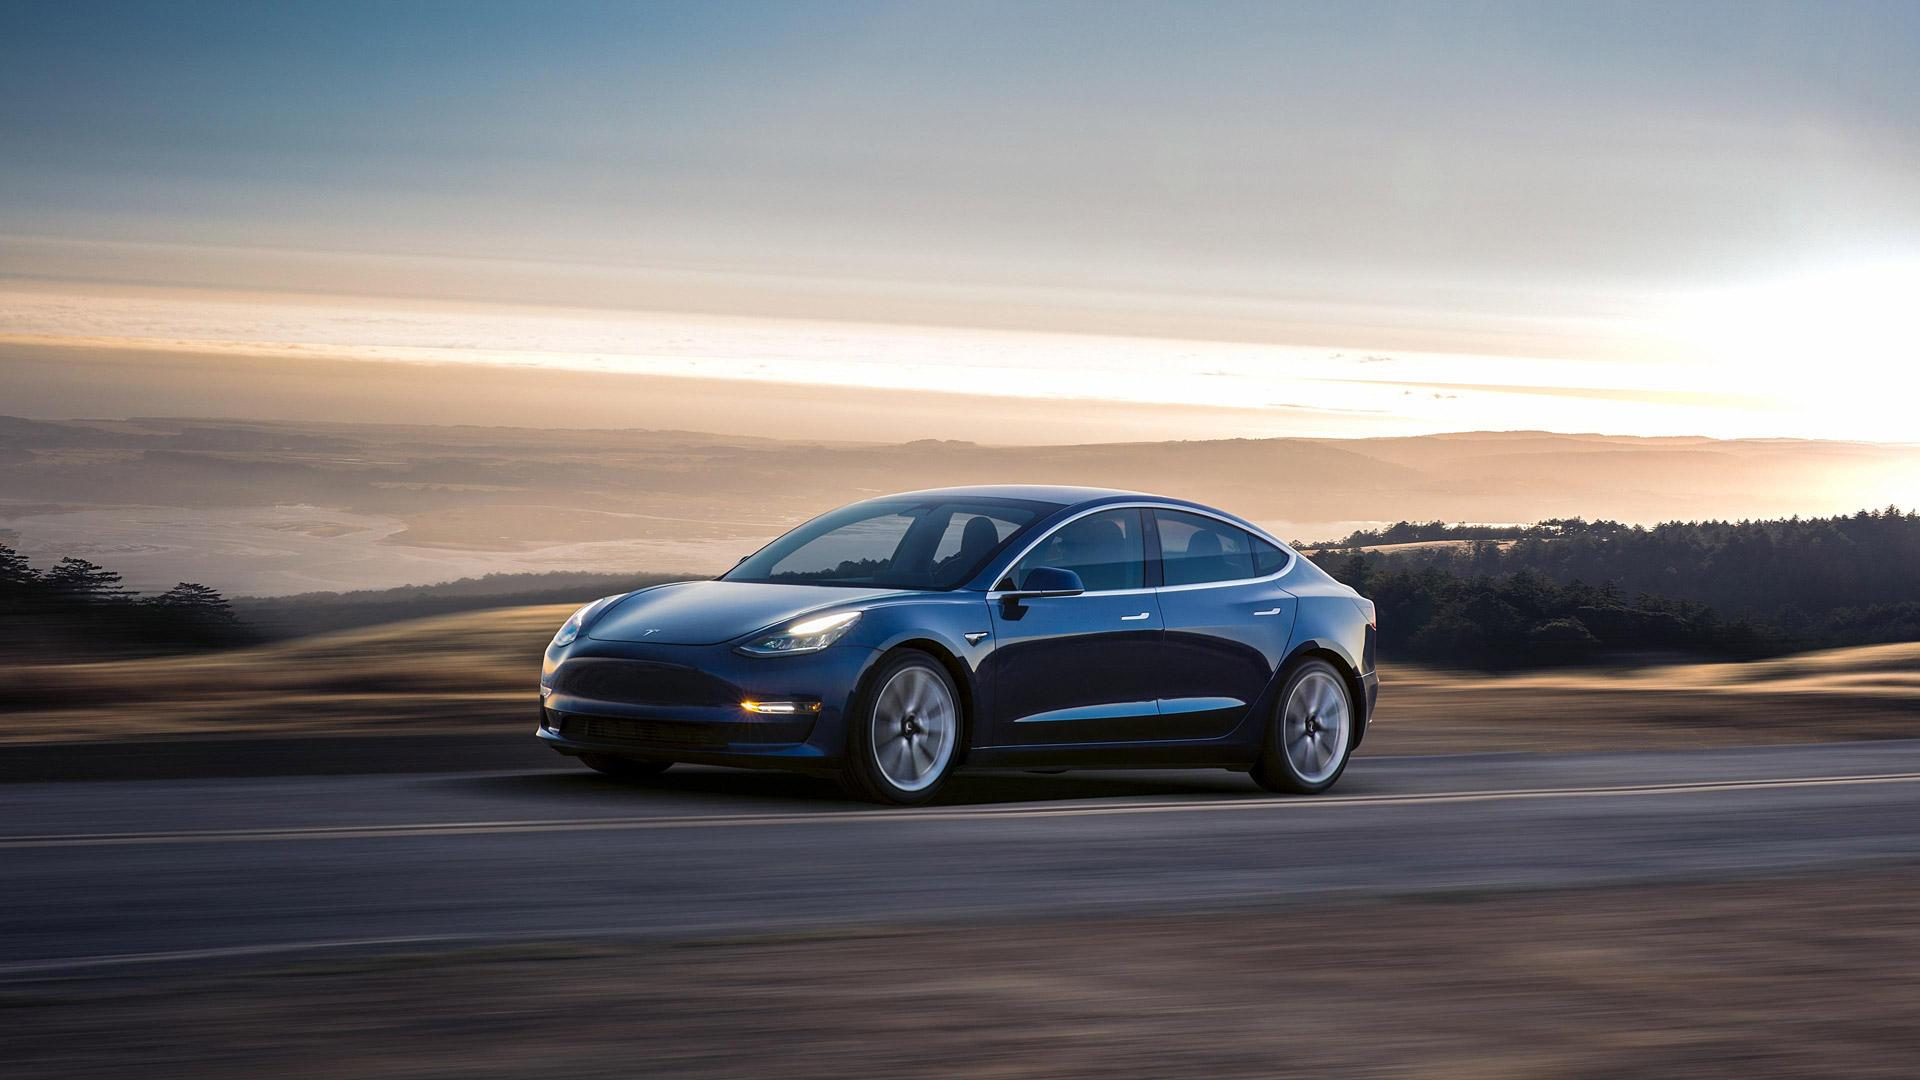 Tesla Model 3 Wallpapers 1920x1080